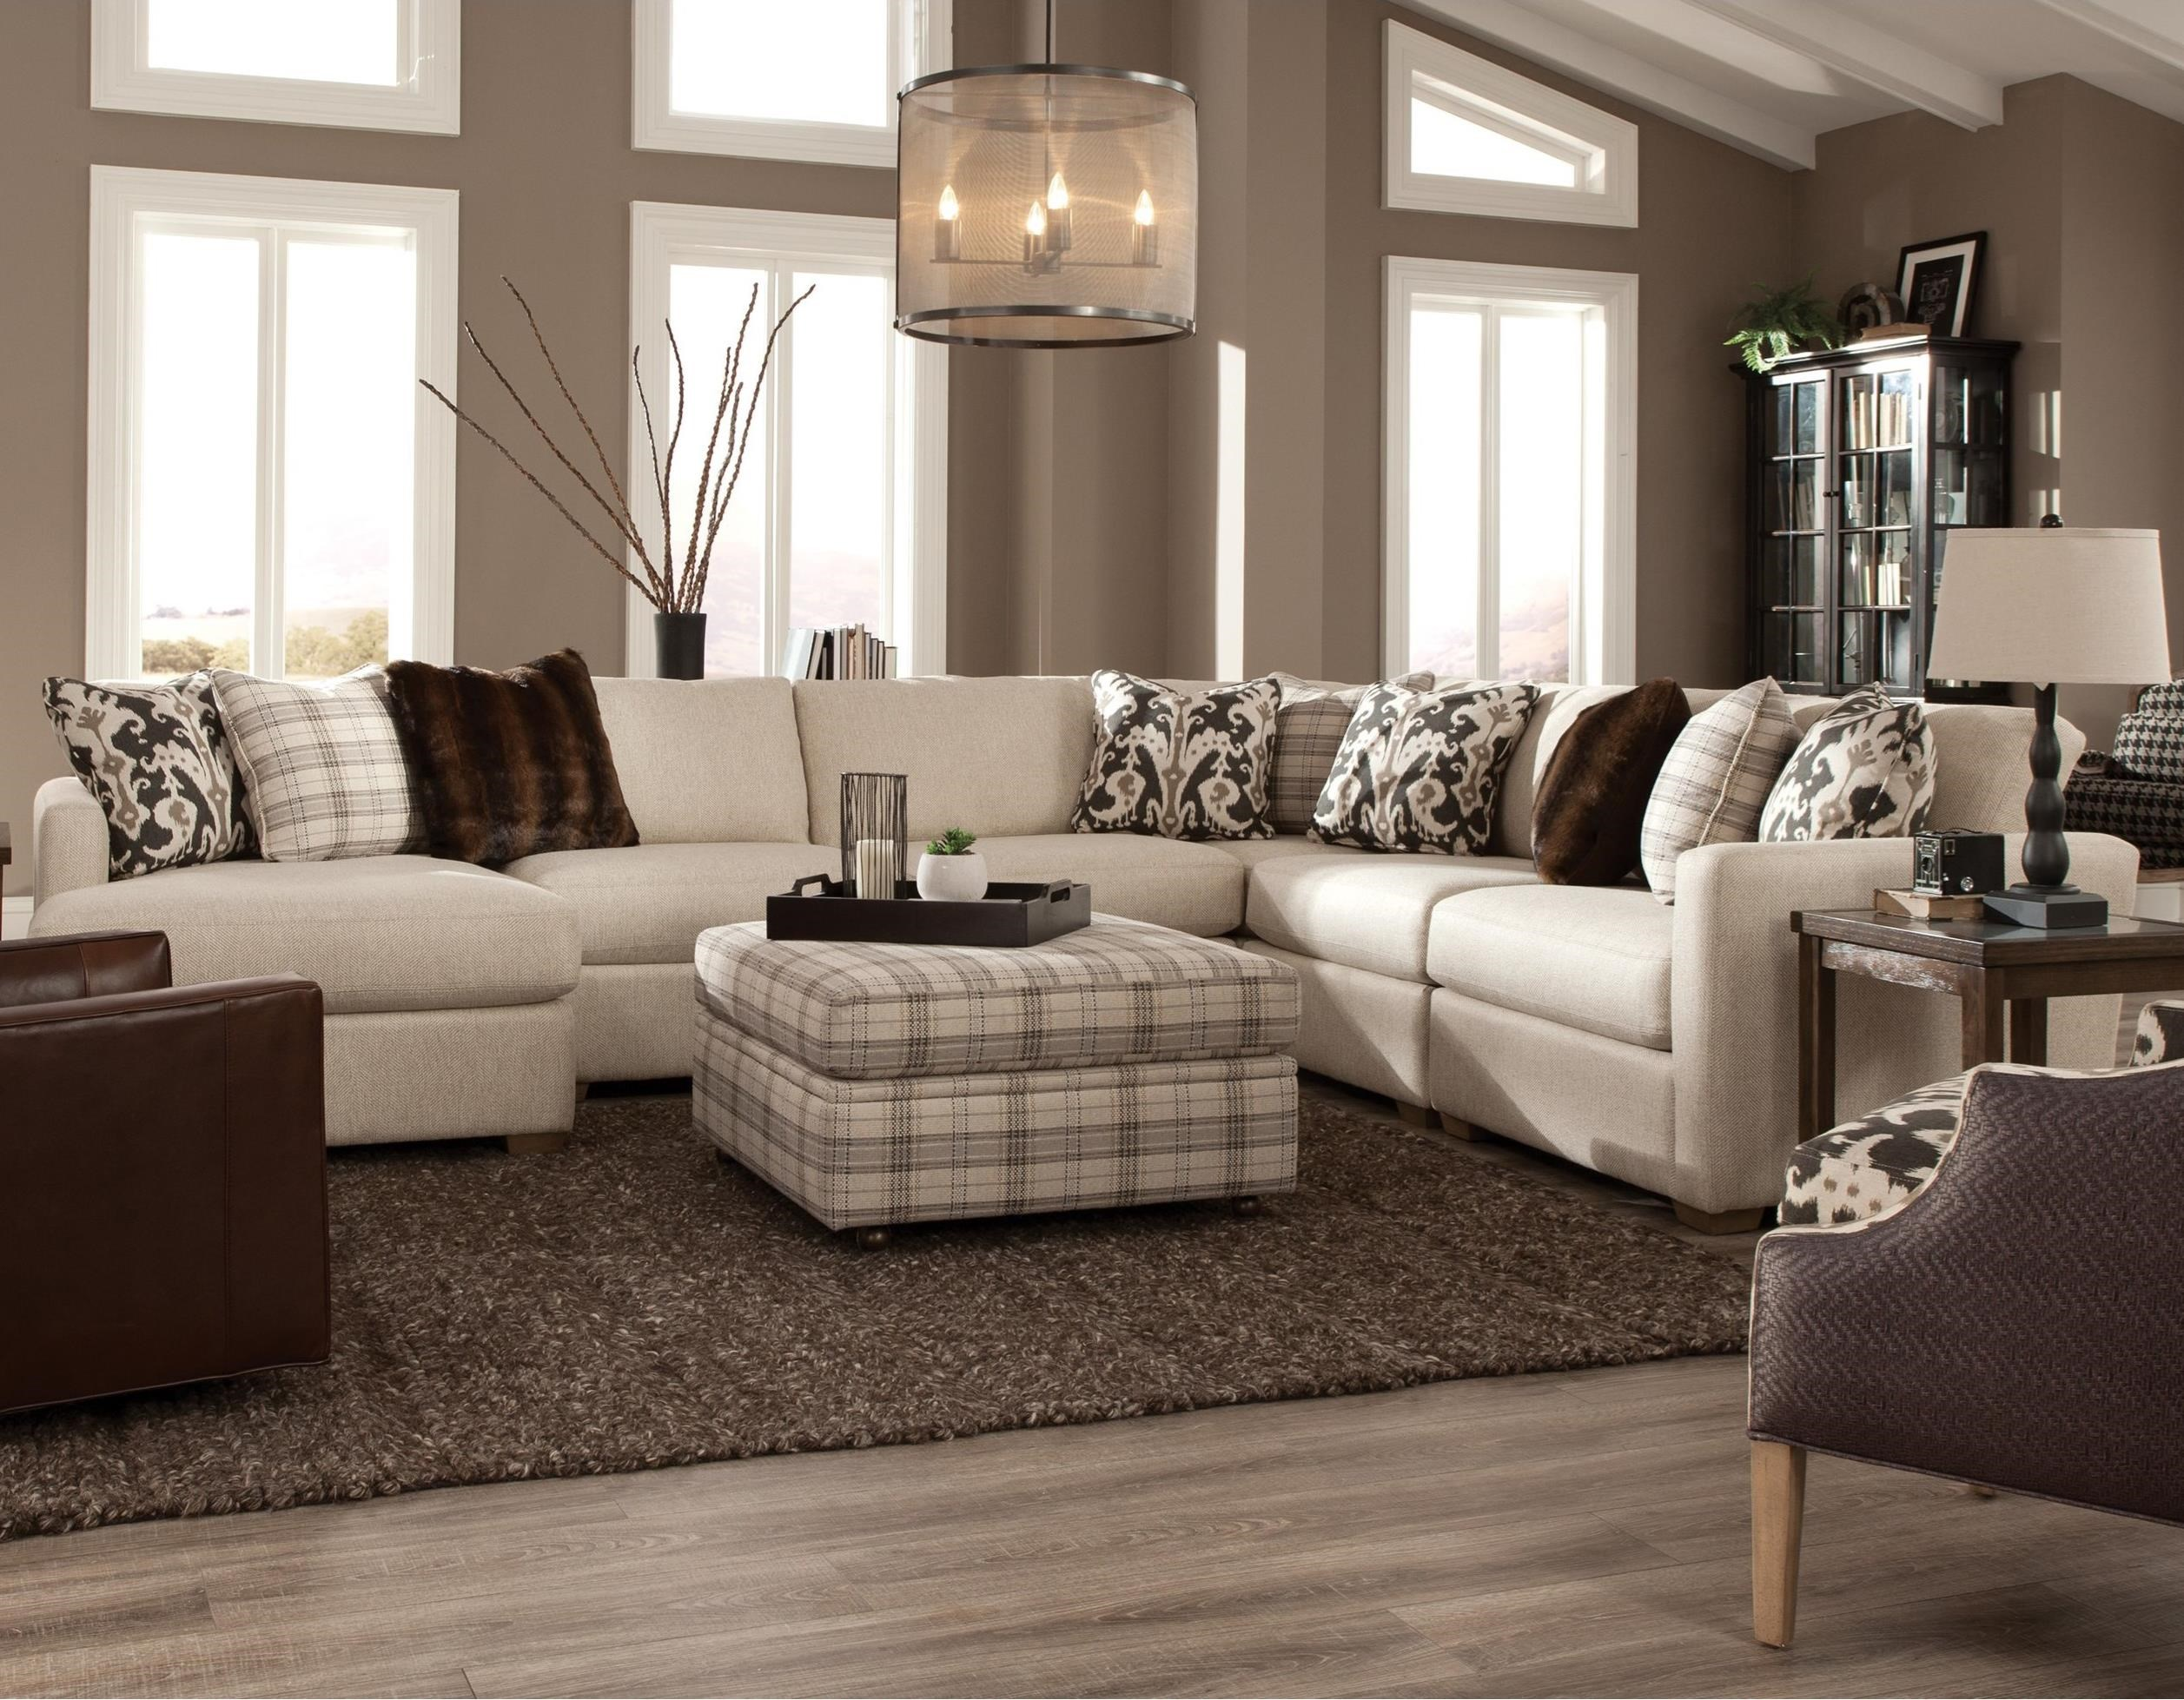 751100 5 Pc Sectional w/ LAF Chaise by Craftmaster at Esprit Decor Home Furnishings